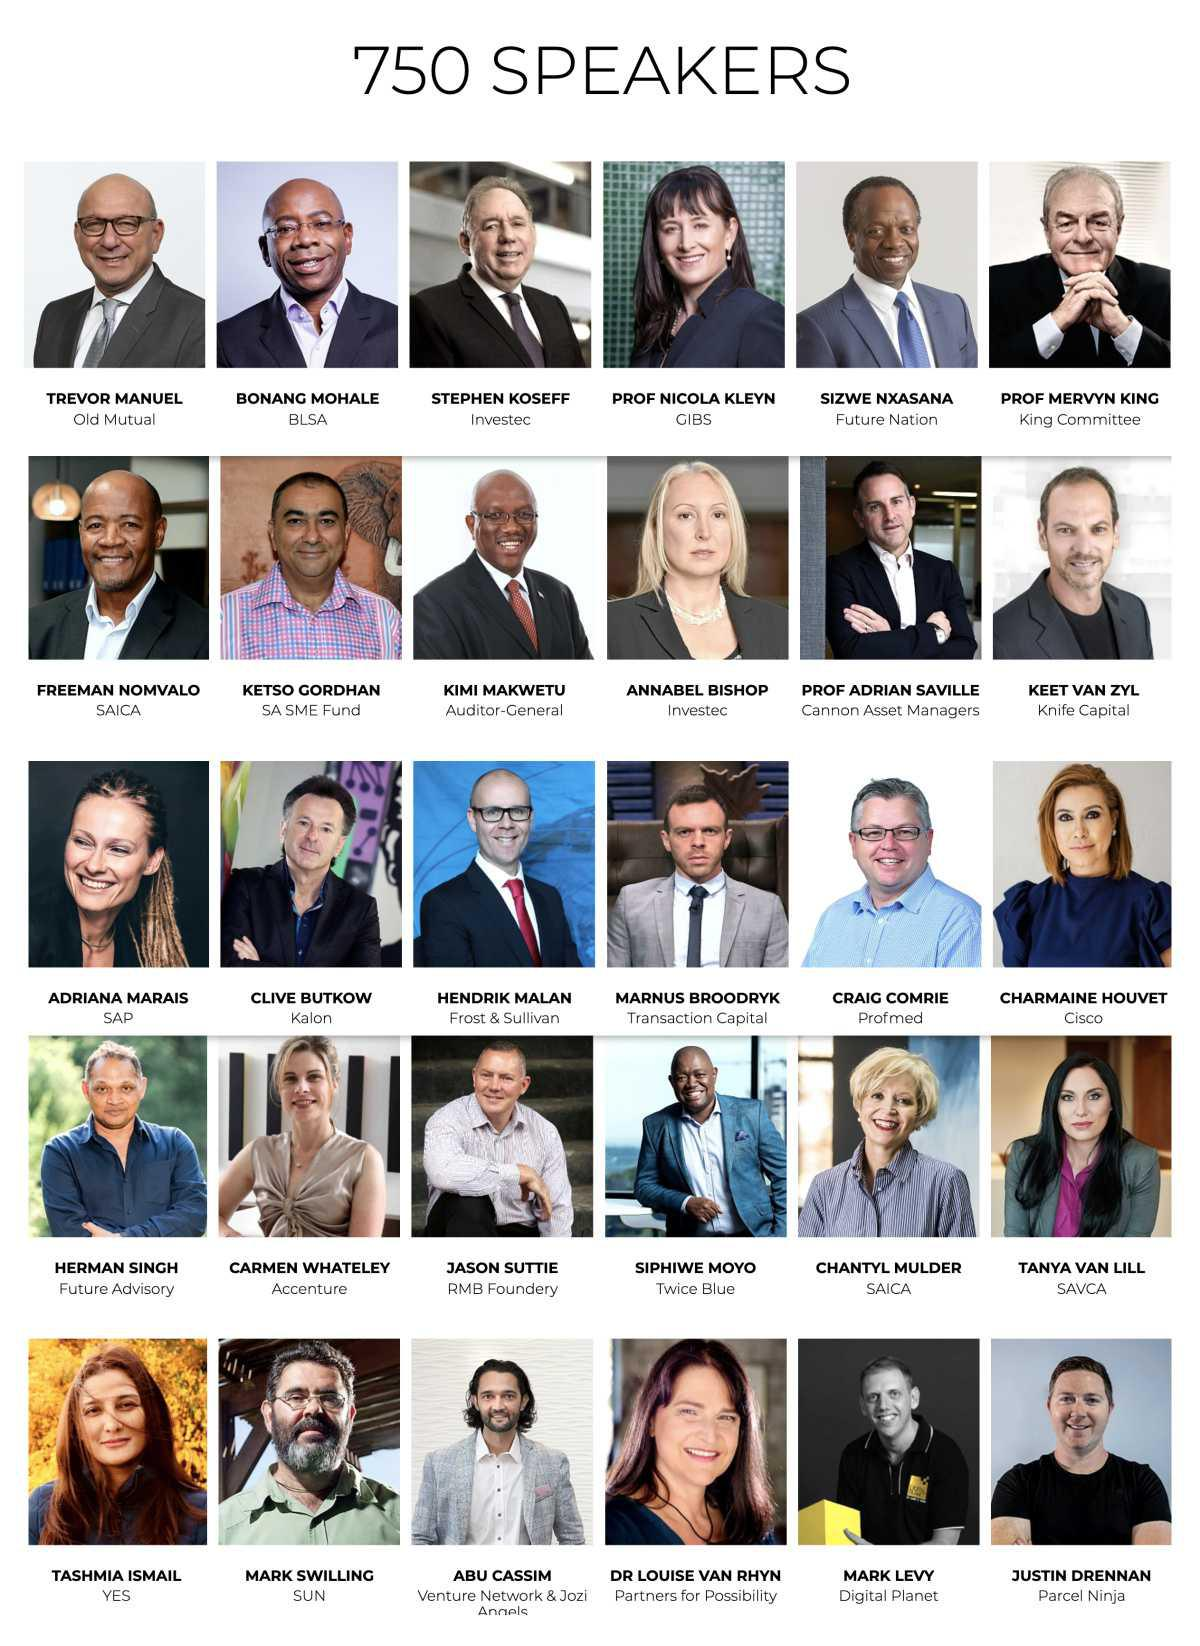 Leaderex - Get inspired by top CEOs and entrepreneurs